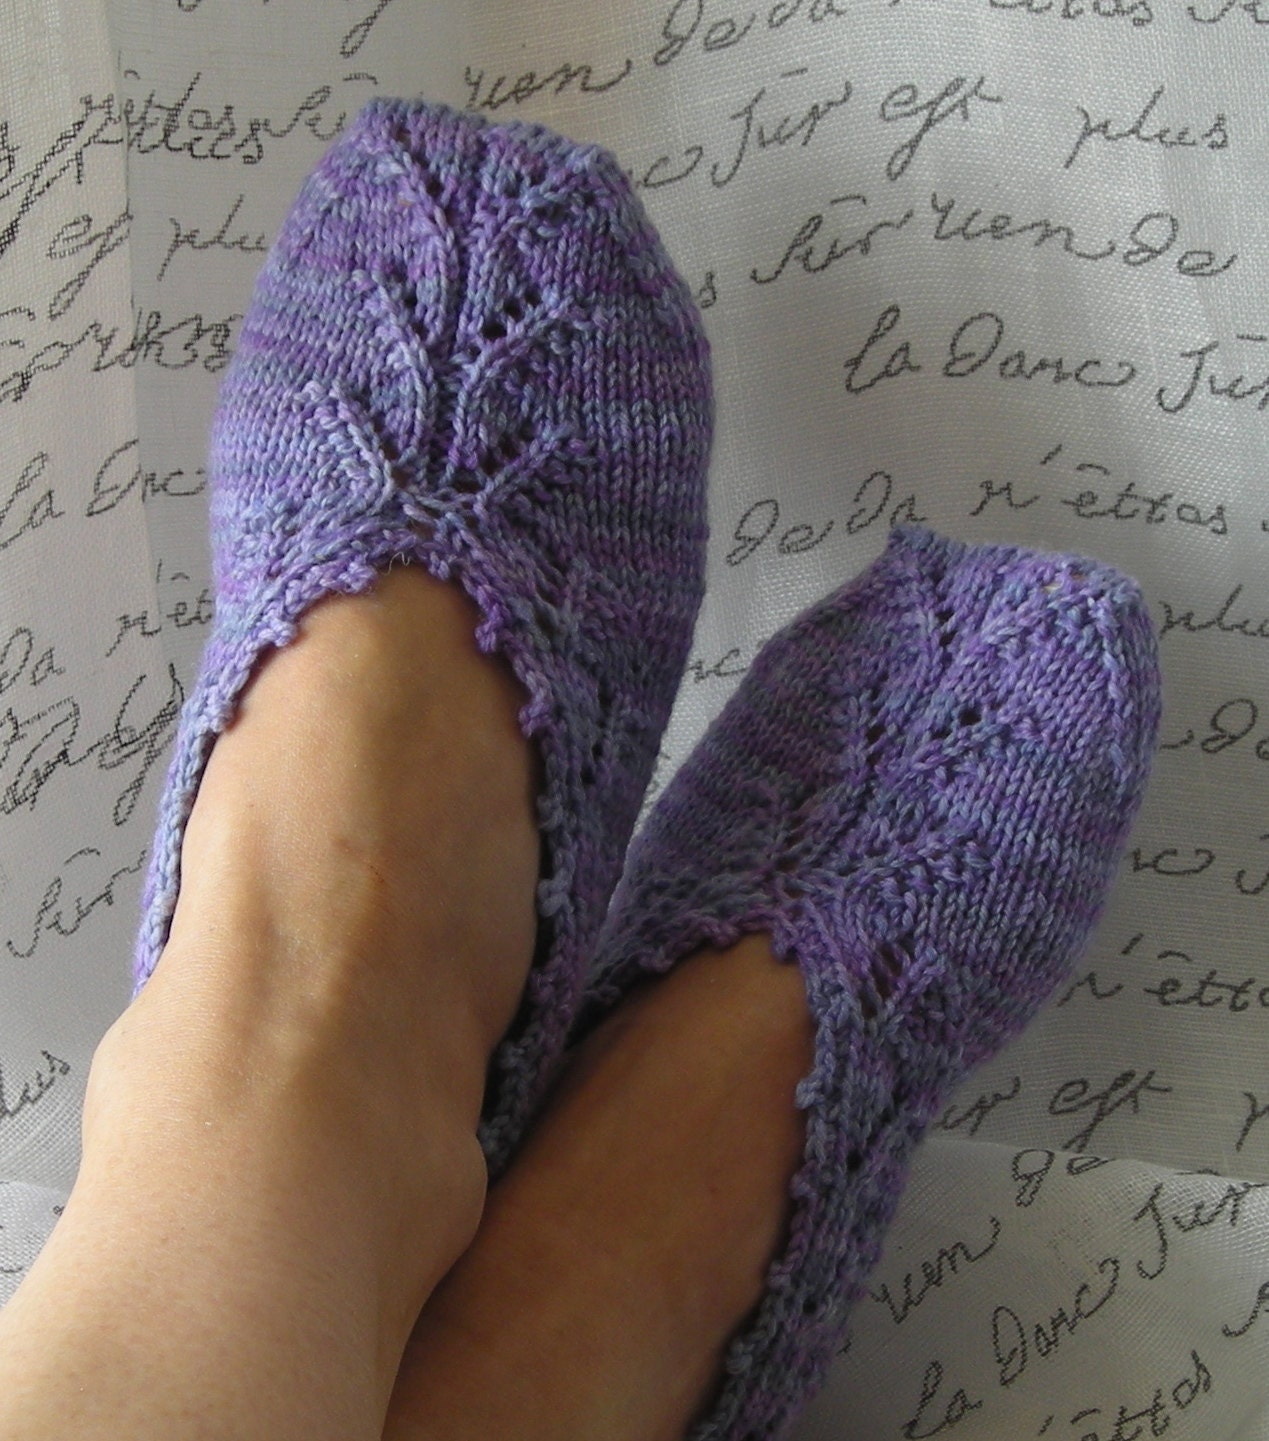 Enchanting Socks Knitting Pattern Free Composition - Blanket ...